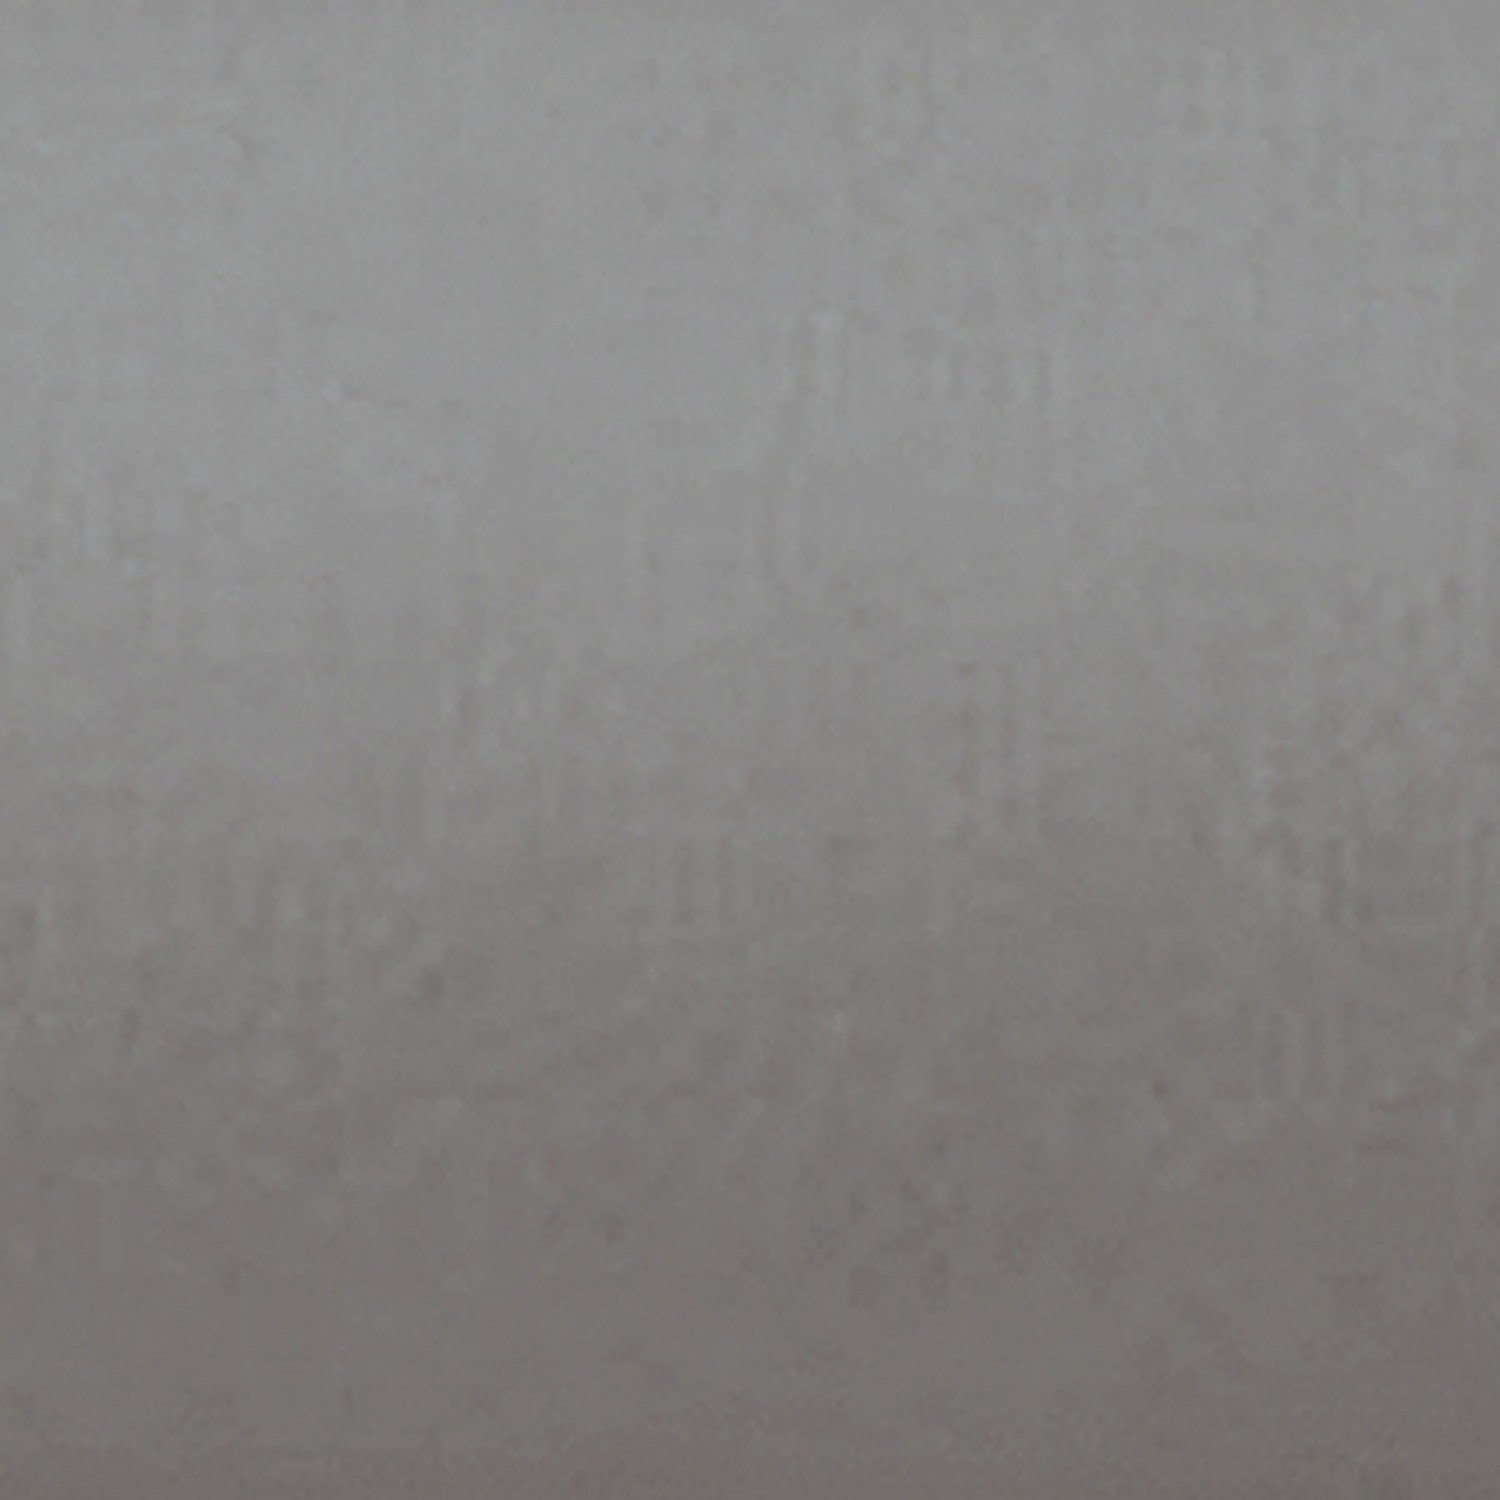 Camelot Fresh Solids 214 0027 Stone $6.99/yd